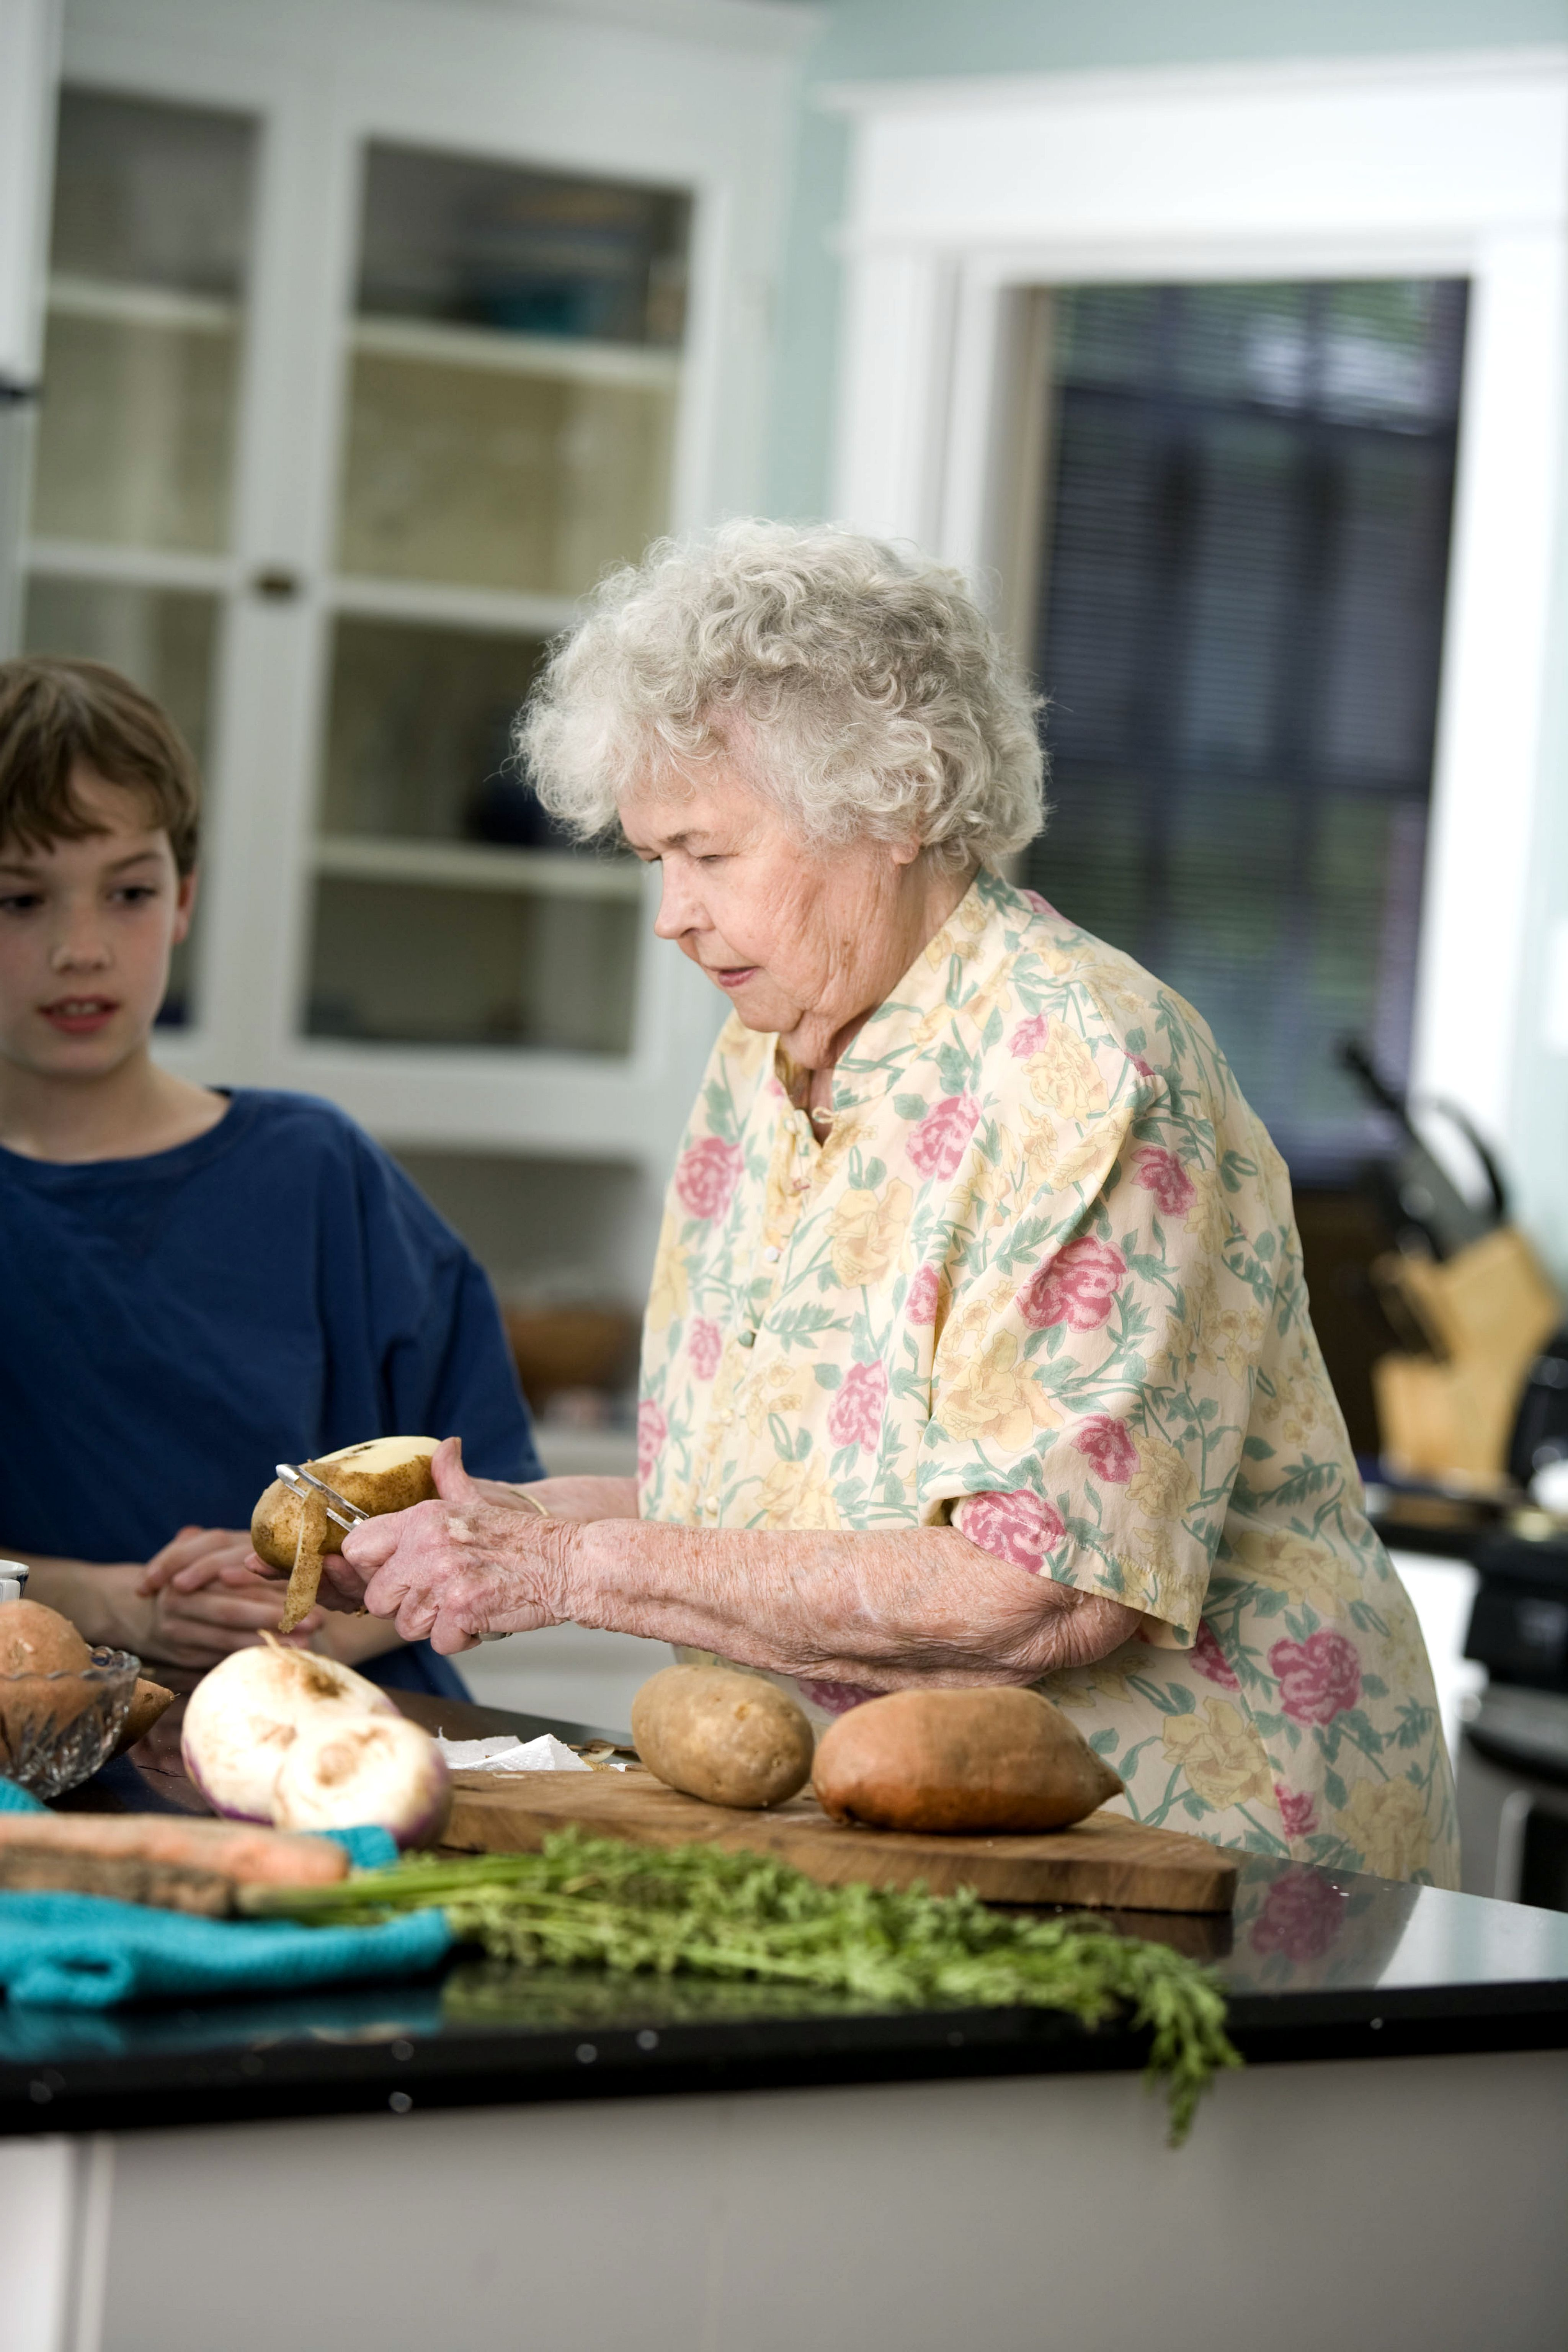 Une Chaise Free Picture: Elderly, Woman, Grandson, Kitchen